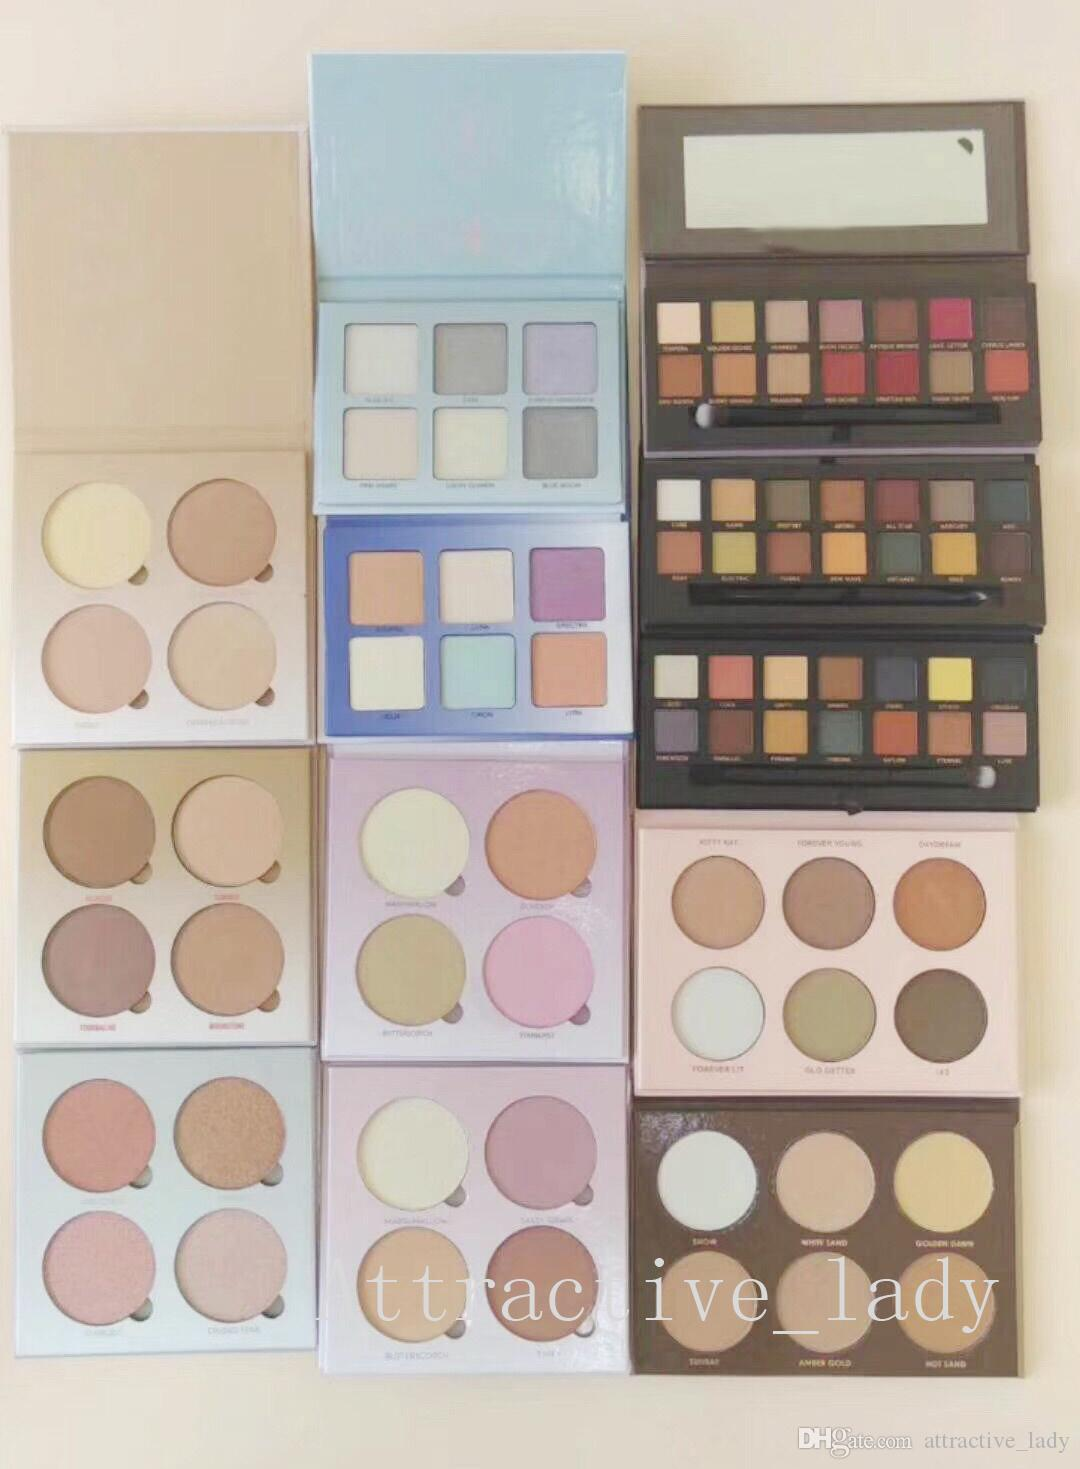 New High-quality Makeup Super Beauty Highlight Palettes 4colors 6colors 11styles Highlight Palette Free shipping